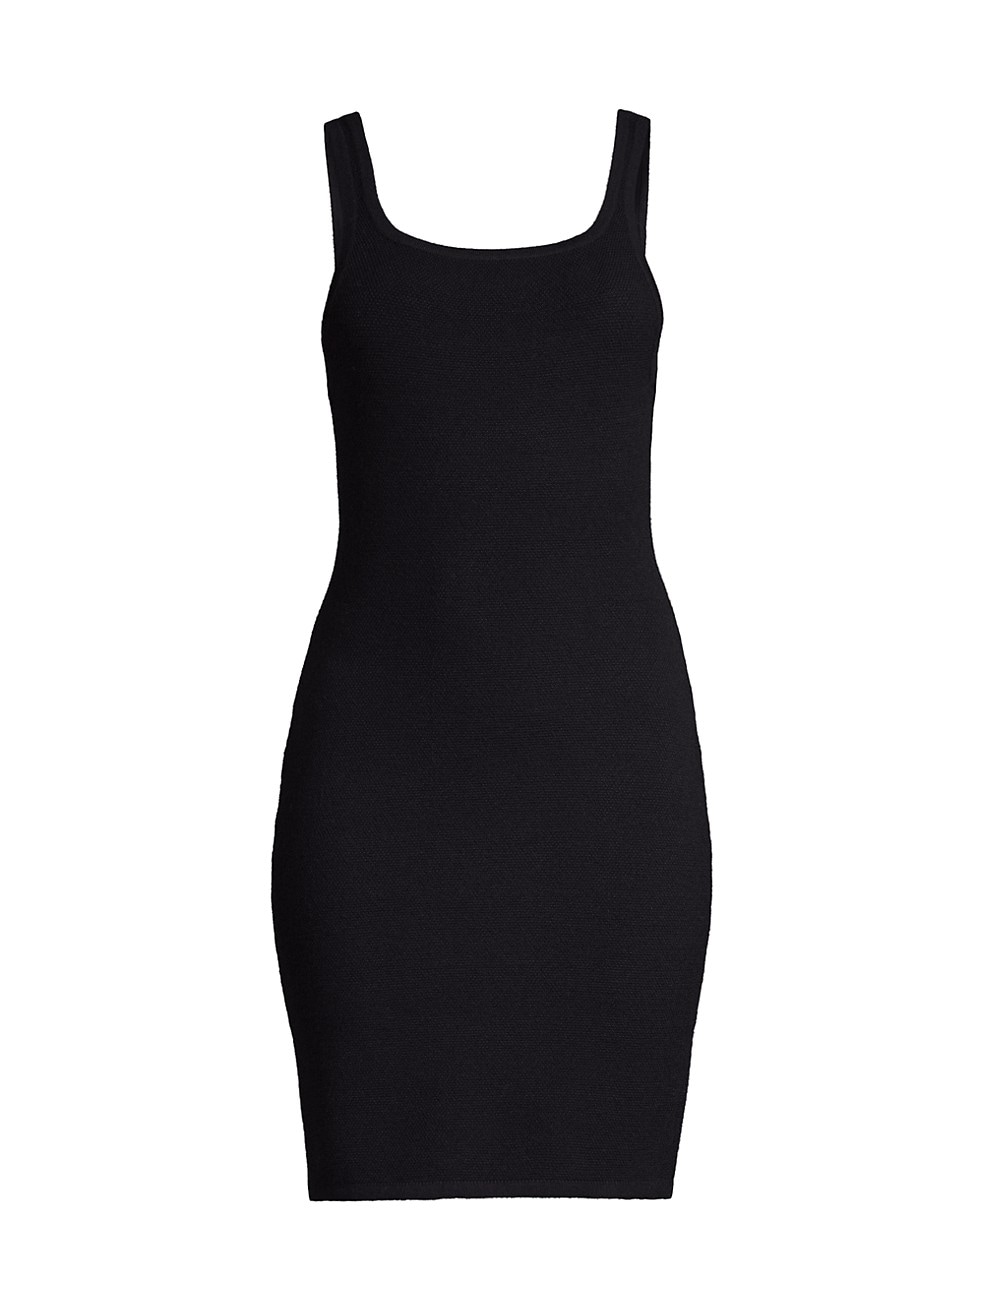 Ribbed Tank Dress by Victor Glemaud, available on saksfifthavenue.com for $395 Selena Gomez Dress Exact Product